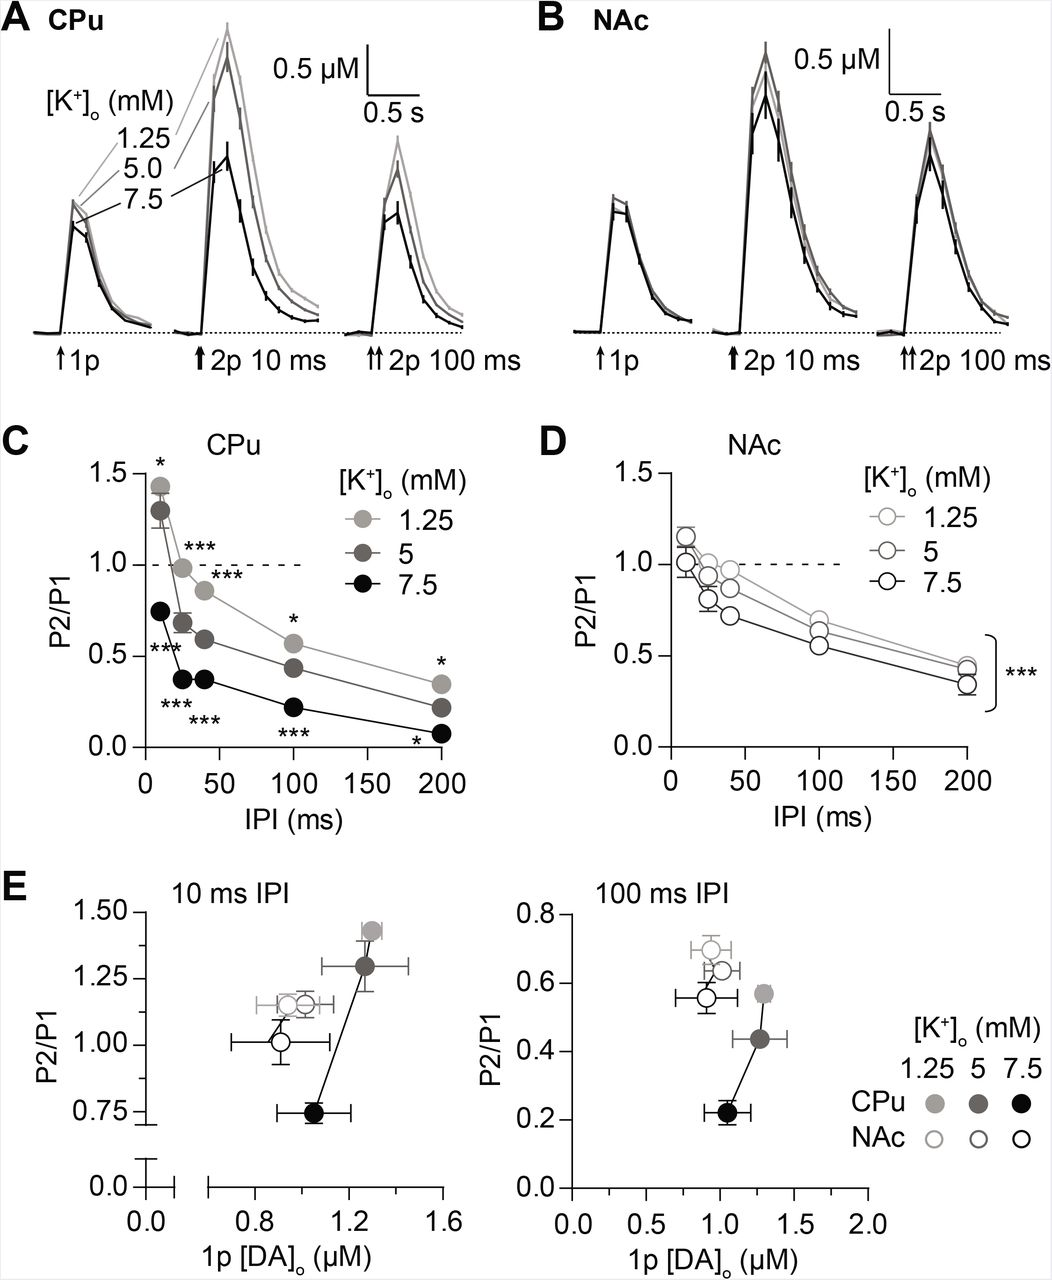 Plasticity in striatal dopamine release is governed by